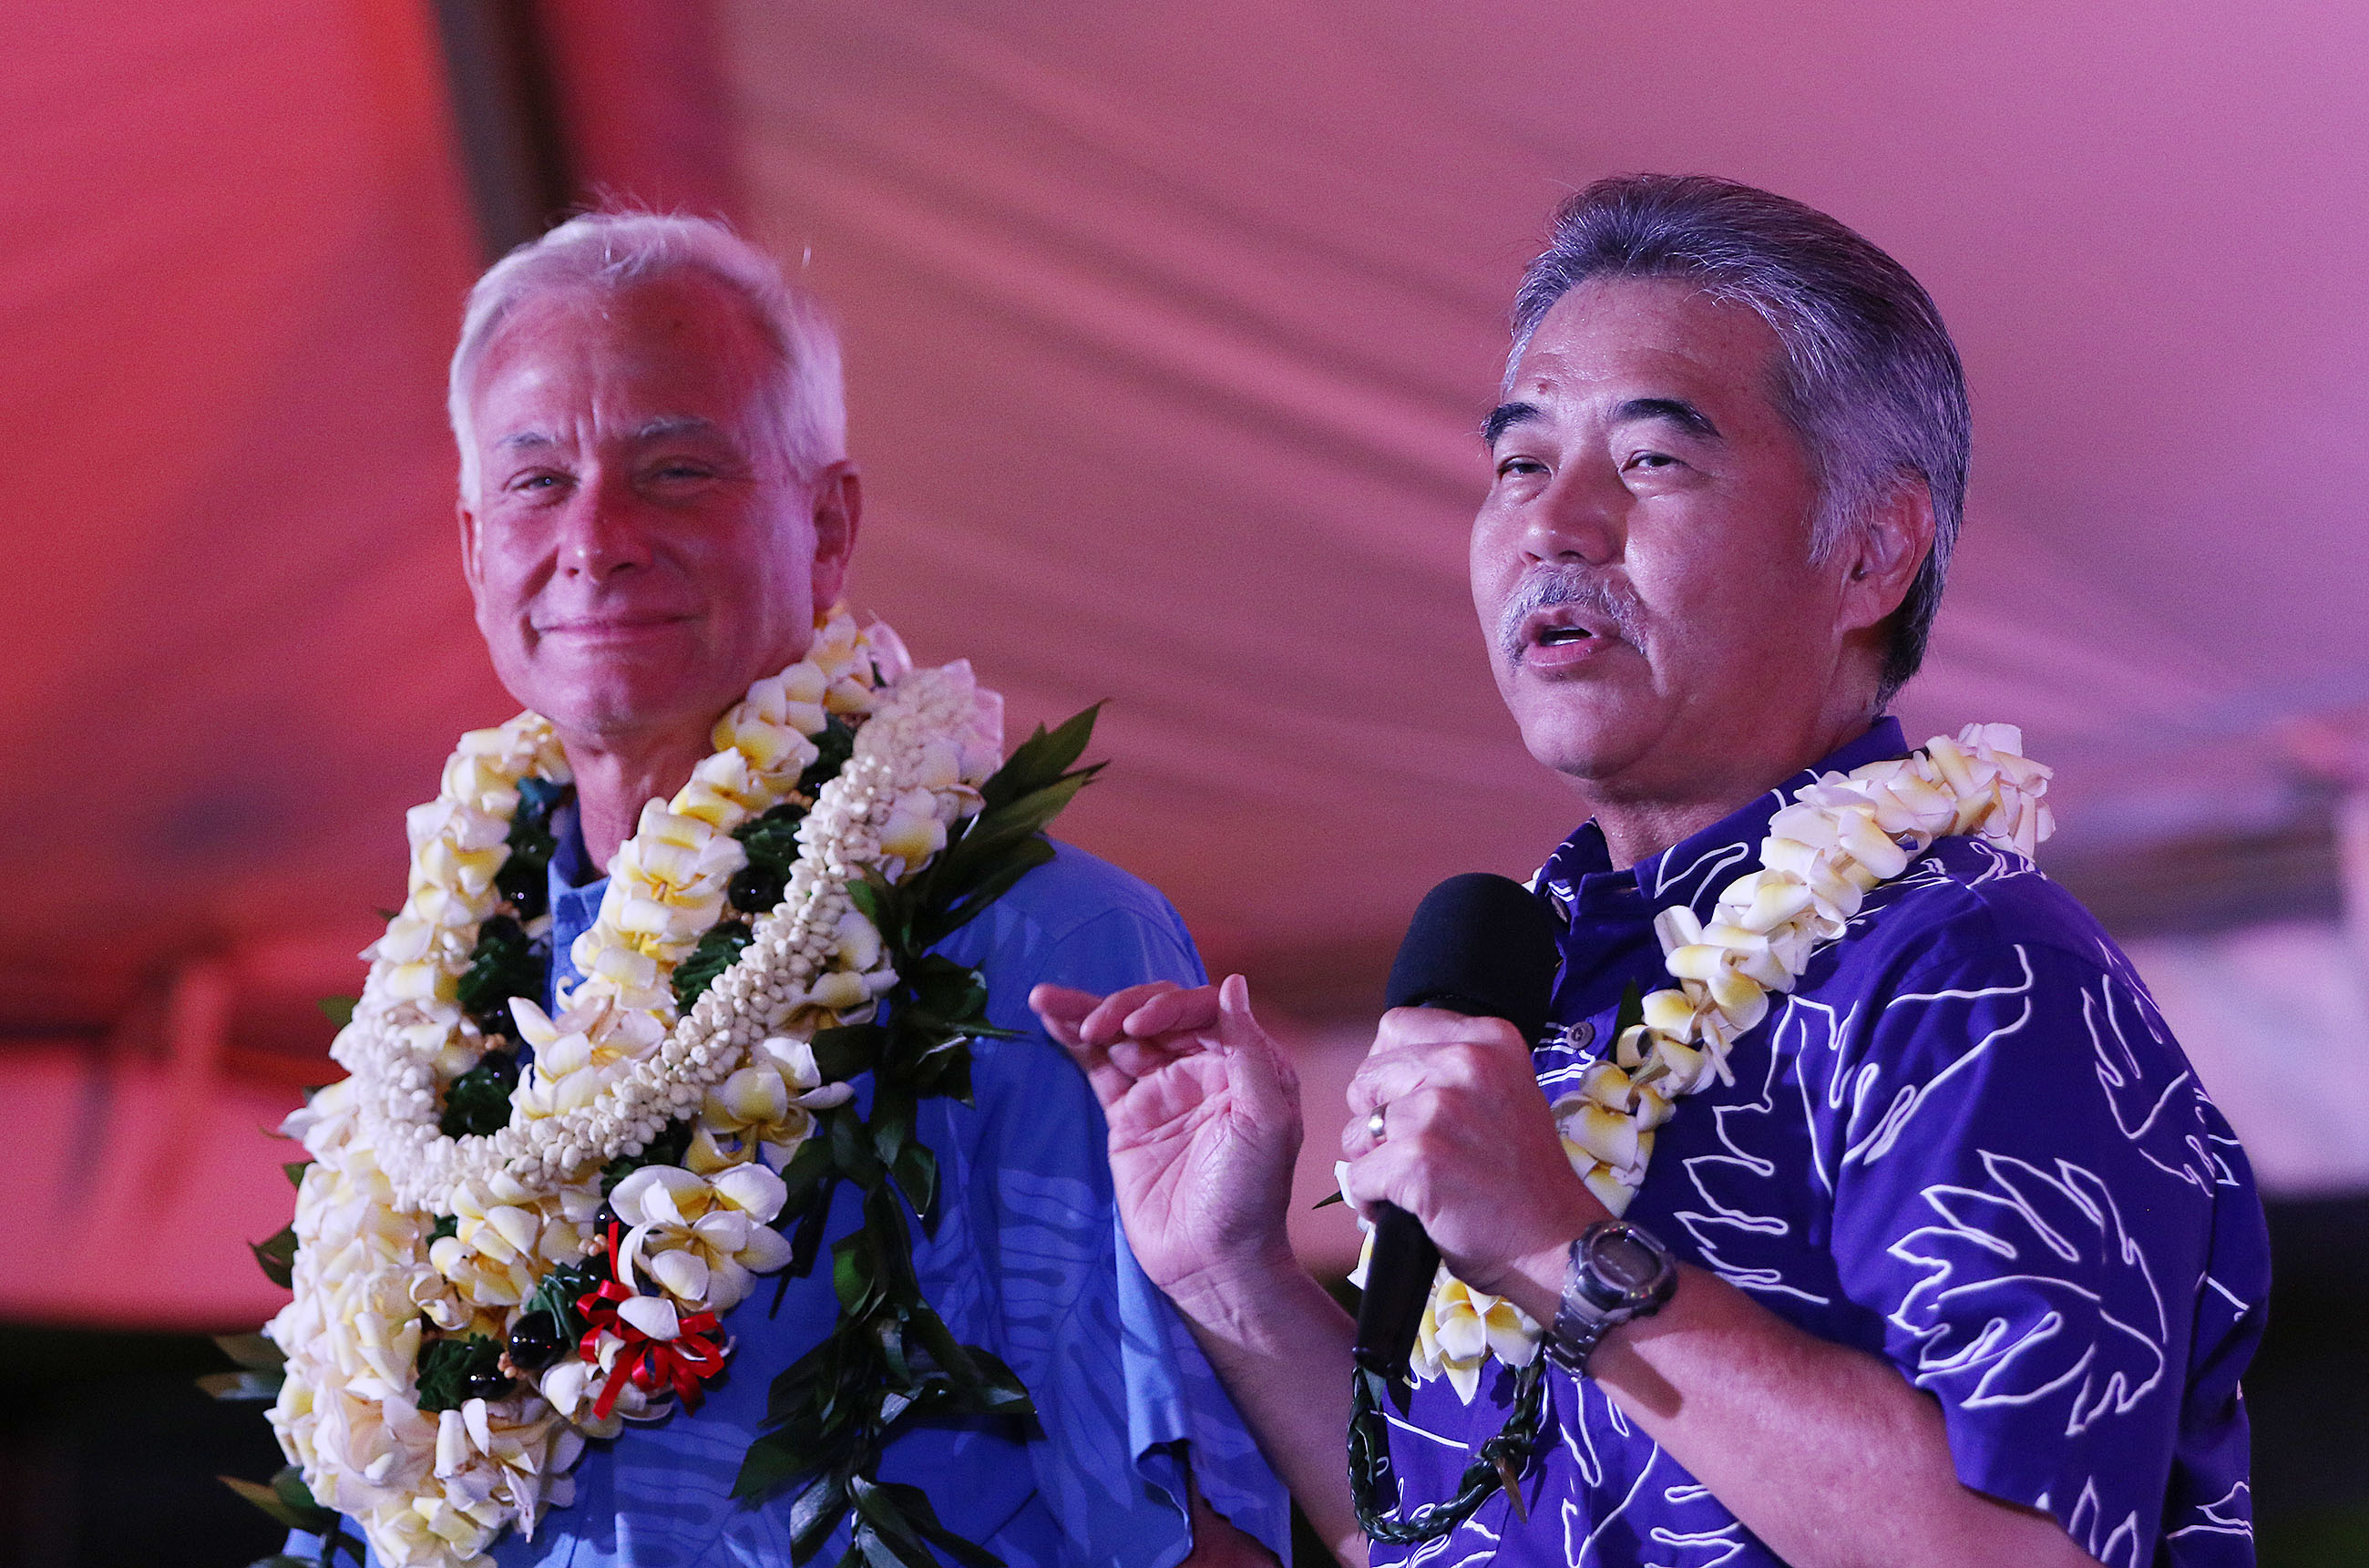 "<p>Hawaii Gov. David Ige joined Kirk Caldwell onstage. Ige said he'd told his wife, Dawn, ""Kirk's going to surprise a lot of people tonight."" Later, the governor noted that November will bring the ""true battle."" (Cory Lum/Civil Beat)</p>"